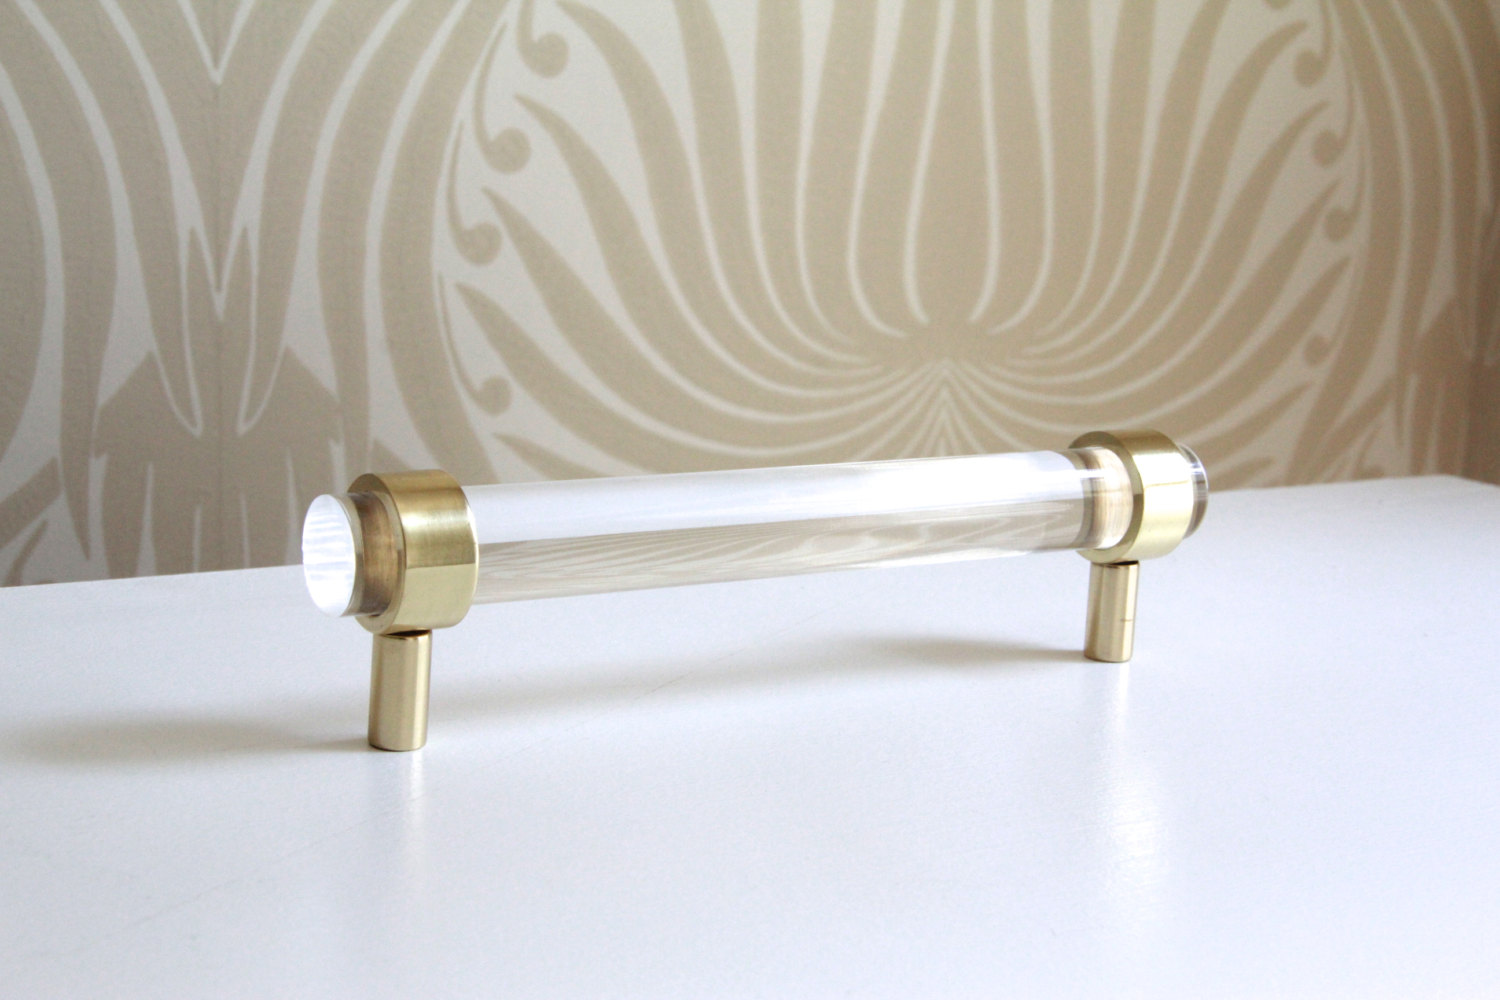 ceramic drawer pulls kitchen kohler faucets 12 creative ideas for handles, knobs and